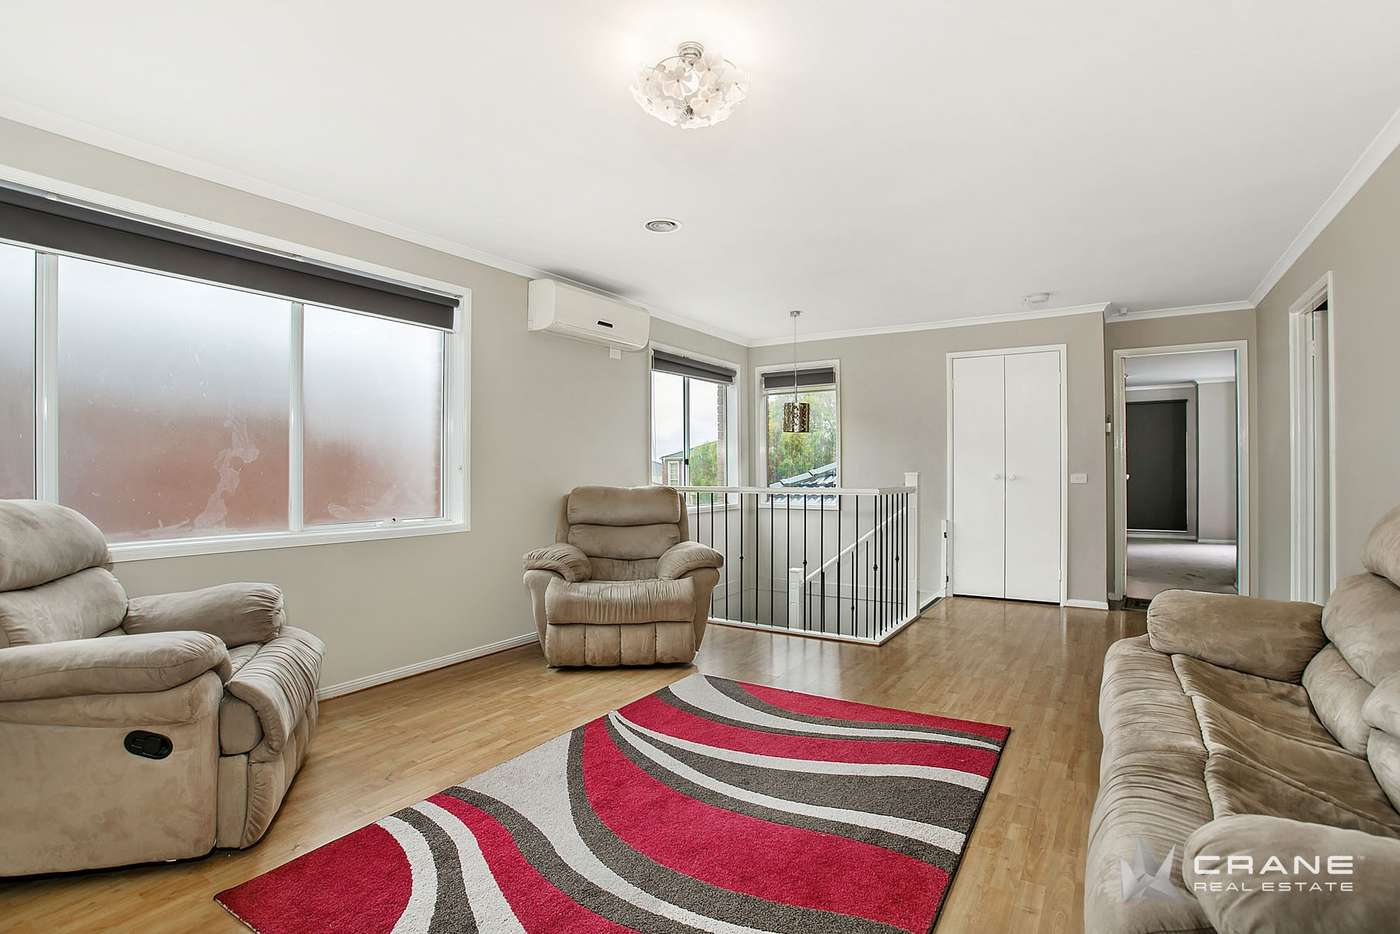 Sixth view of Homely house listing, 23 Dantum Grove, Braybrook VIC 3019